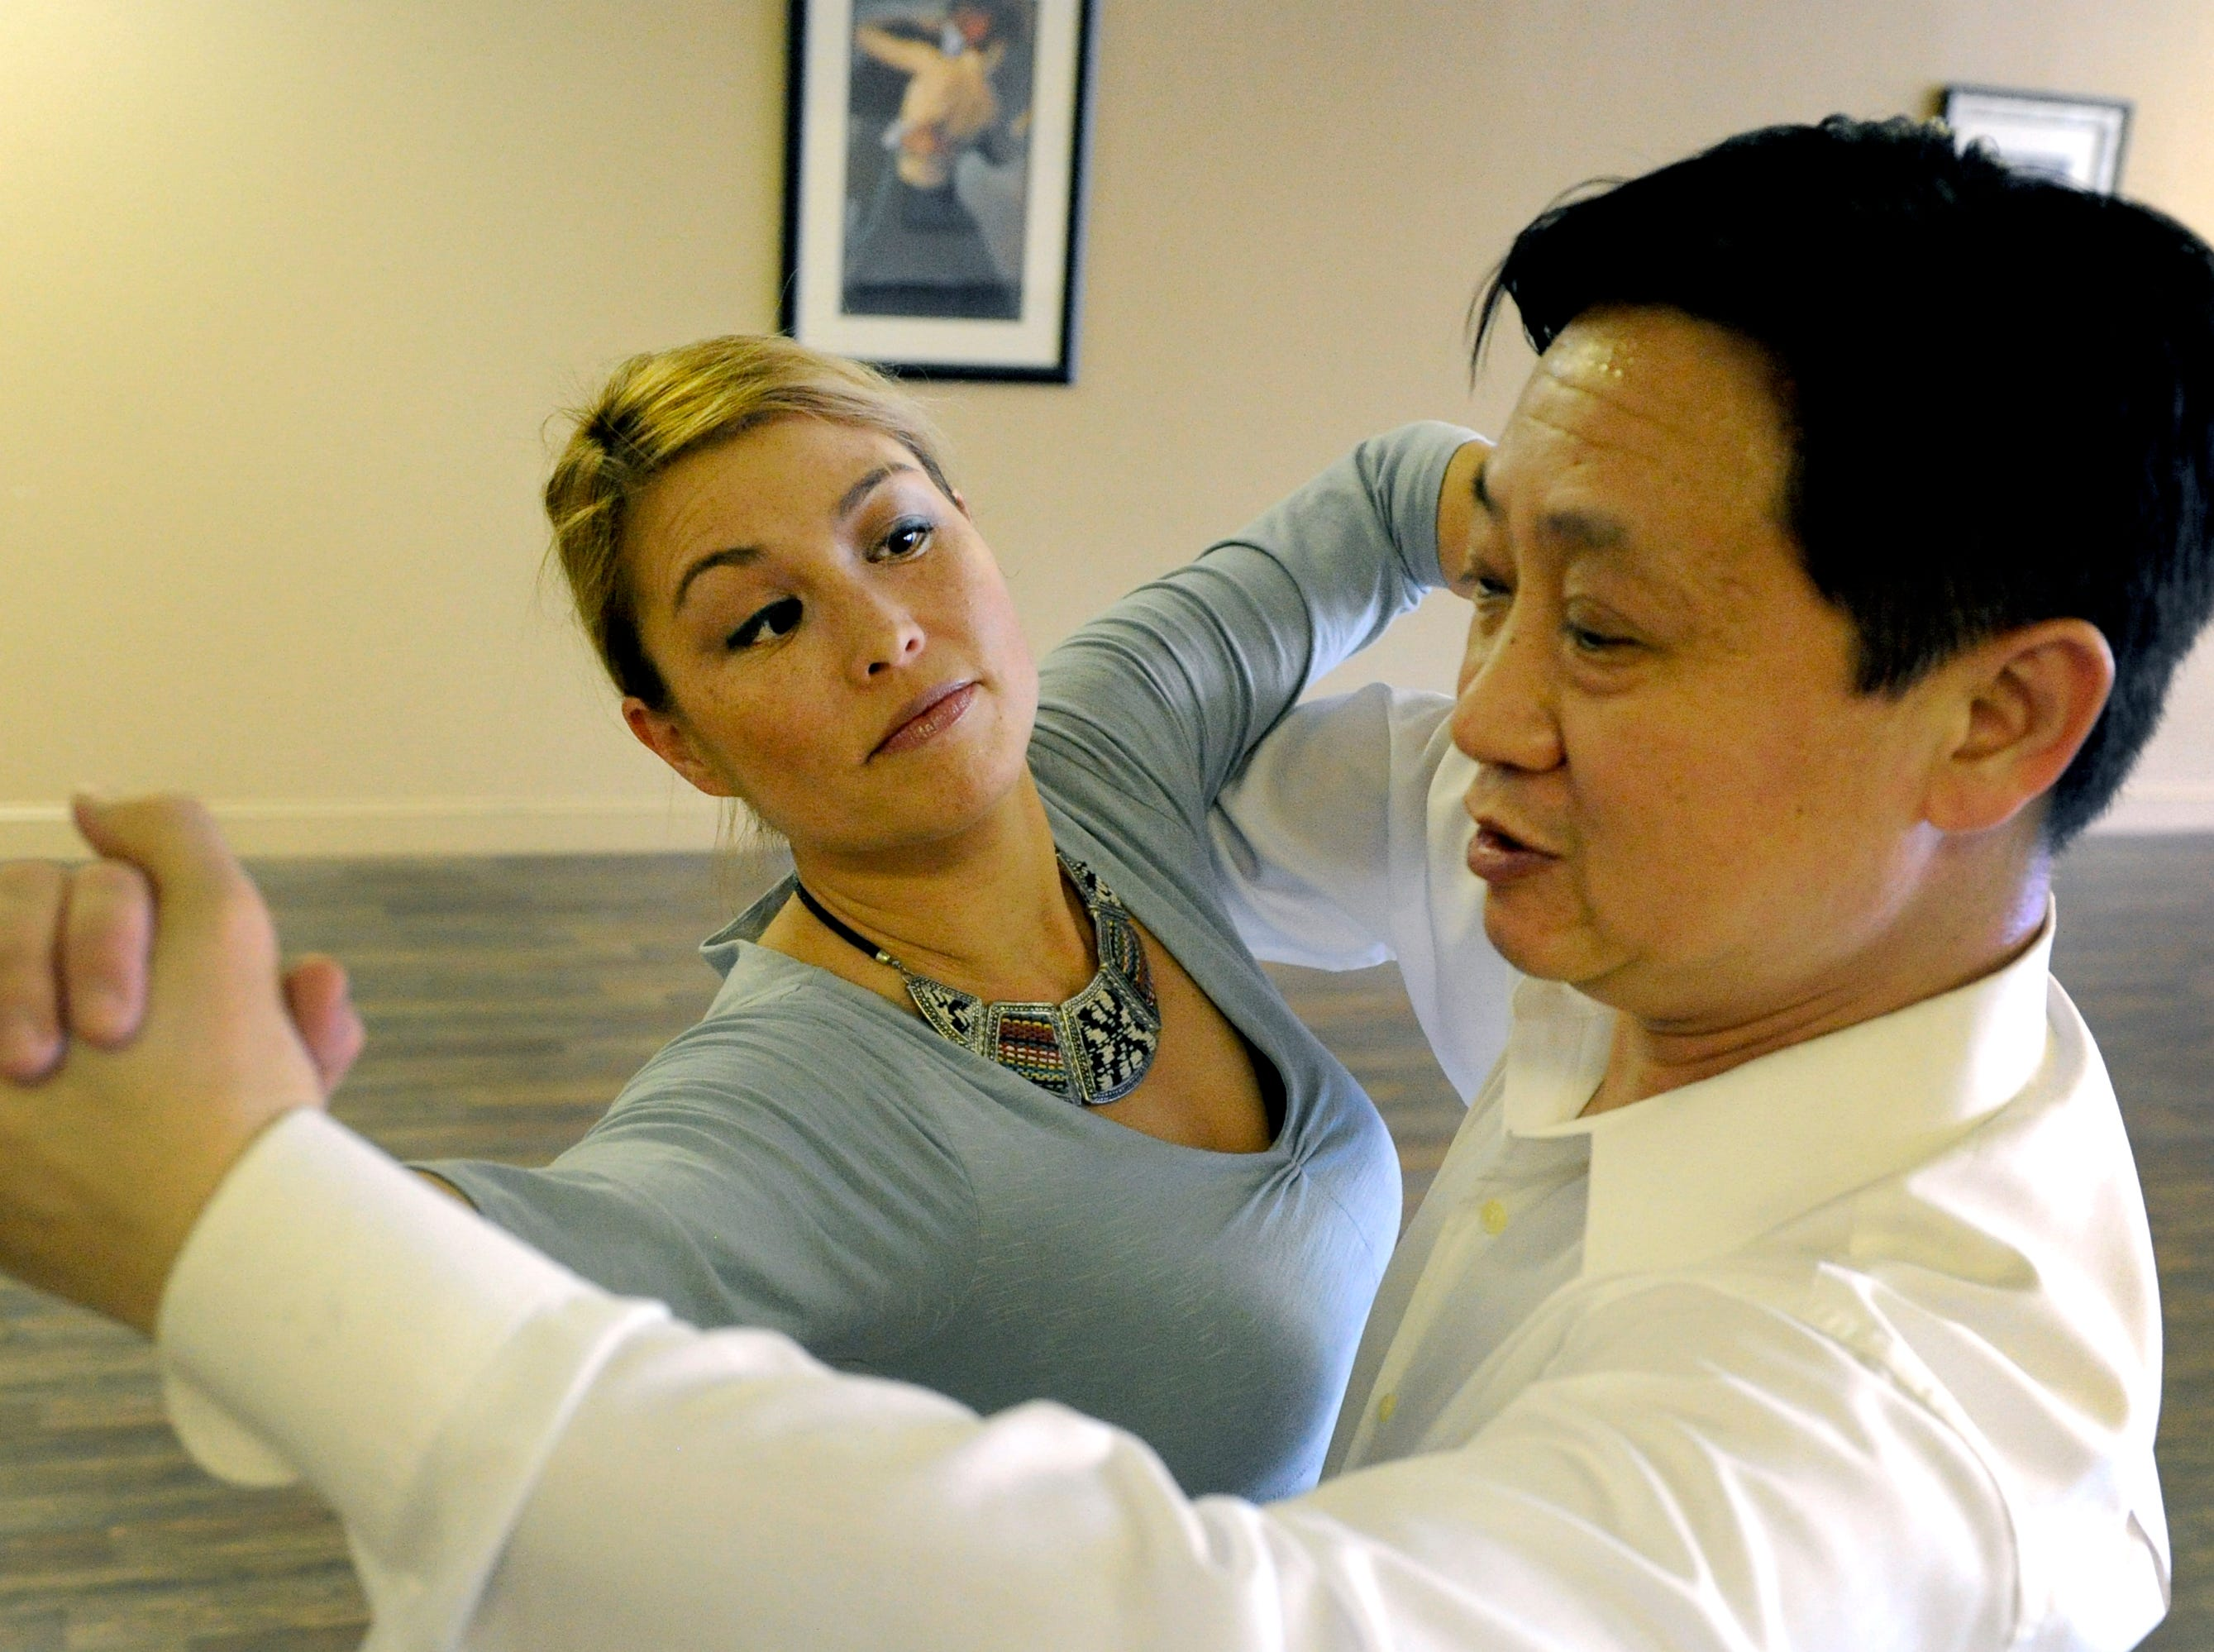 News Sentinel reporter Carly Harrington and Dance Tonight instructor Johnny Tang practicing for Dancing with the Stars for East Tennessee Children's Hospital Wednesday, Mar. 5, 2014. Rehearsal was at the Dance Tonight Knoxville studio in Western Plaza.